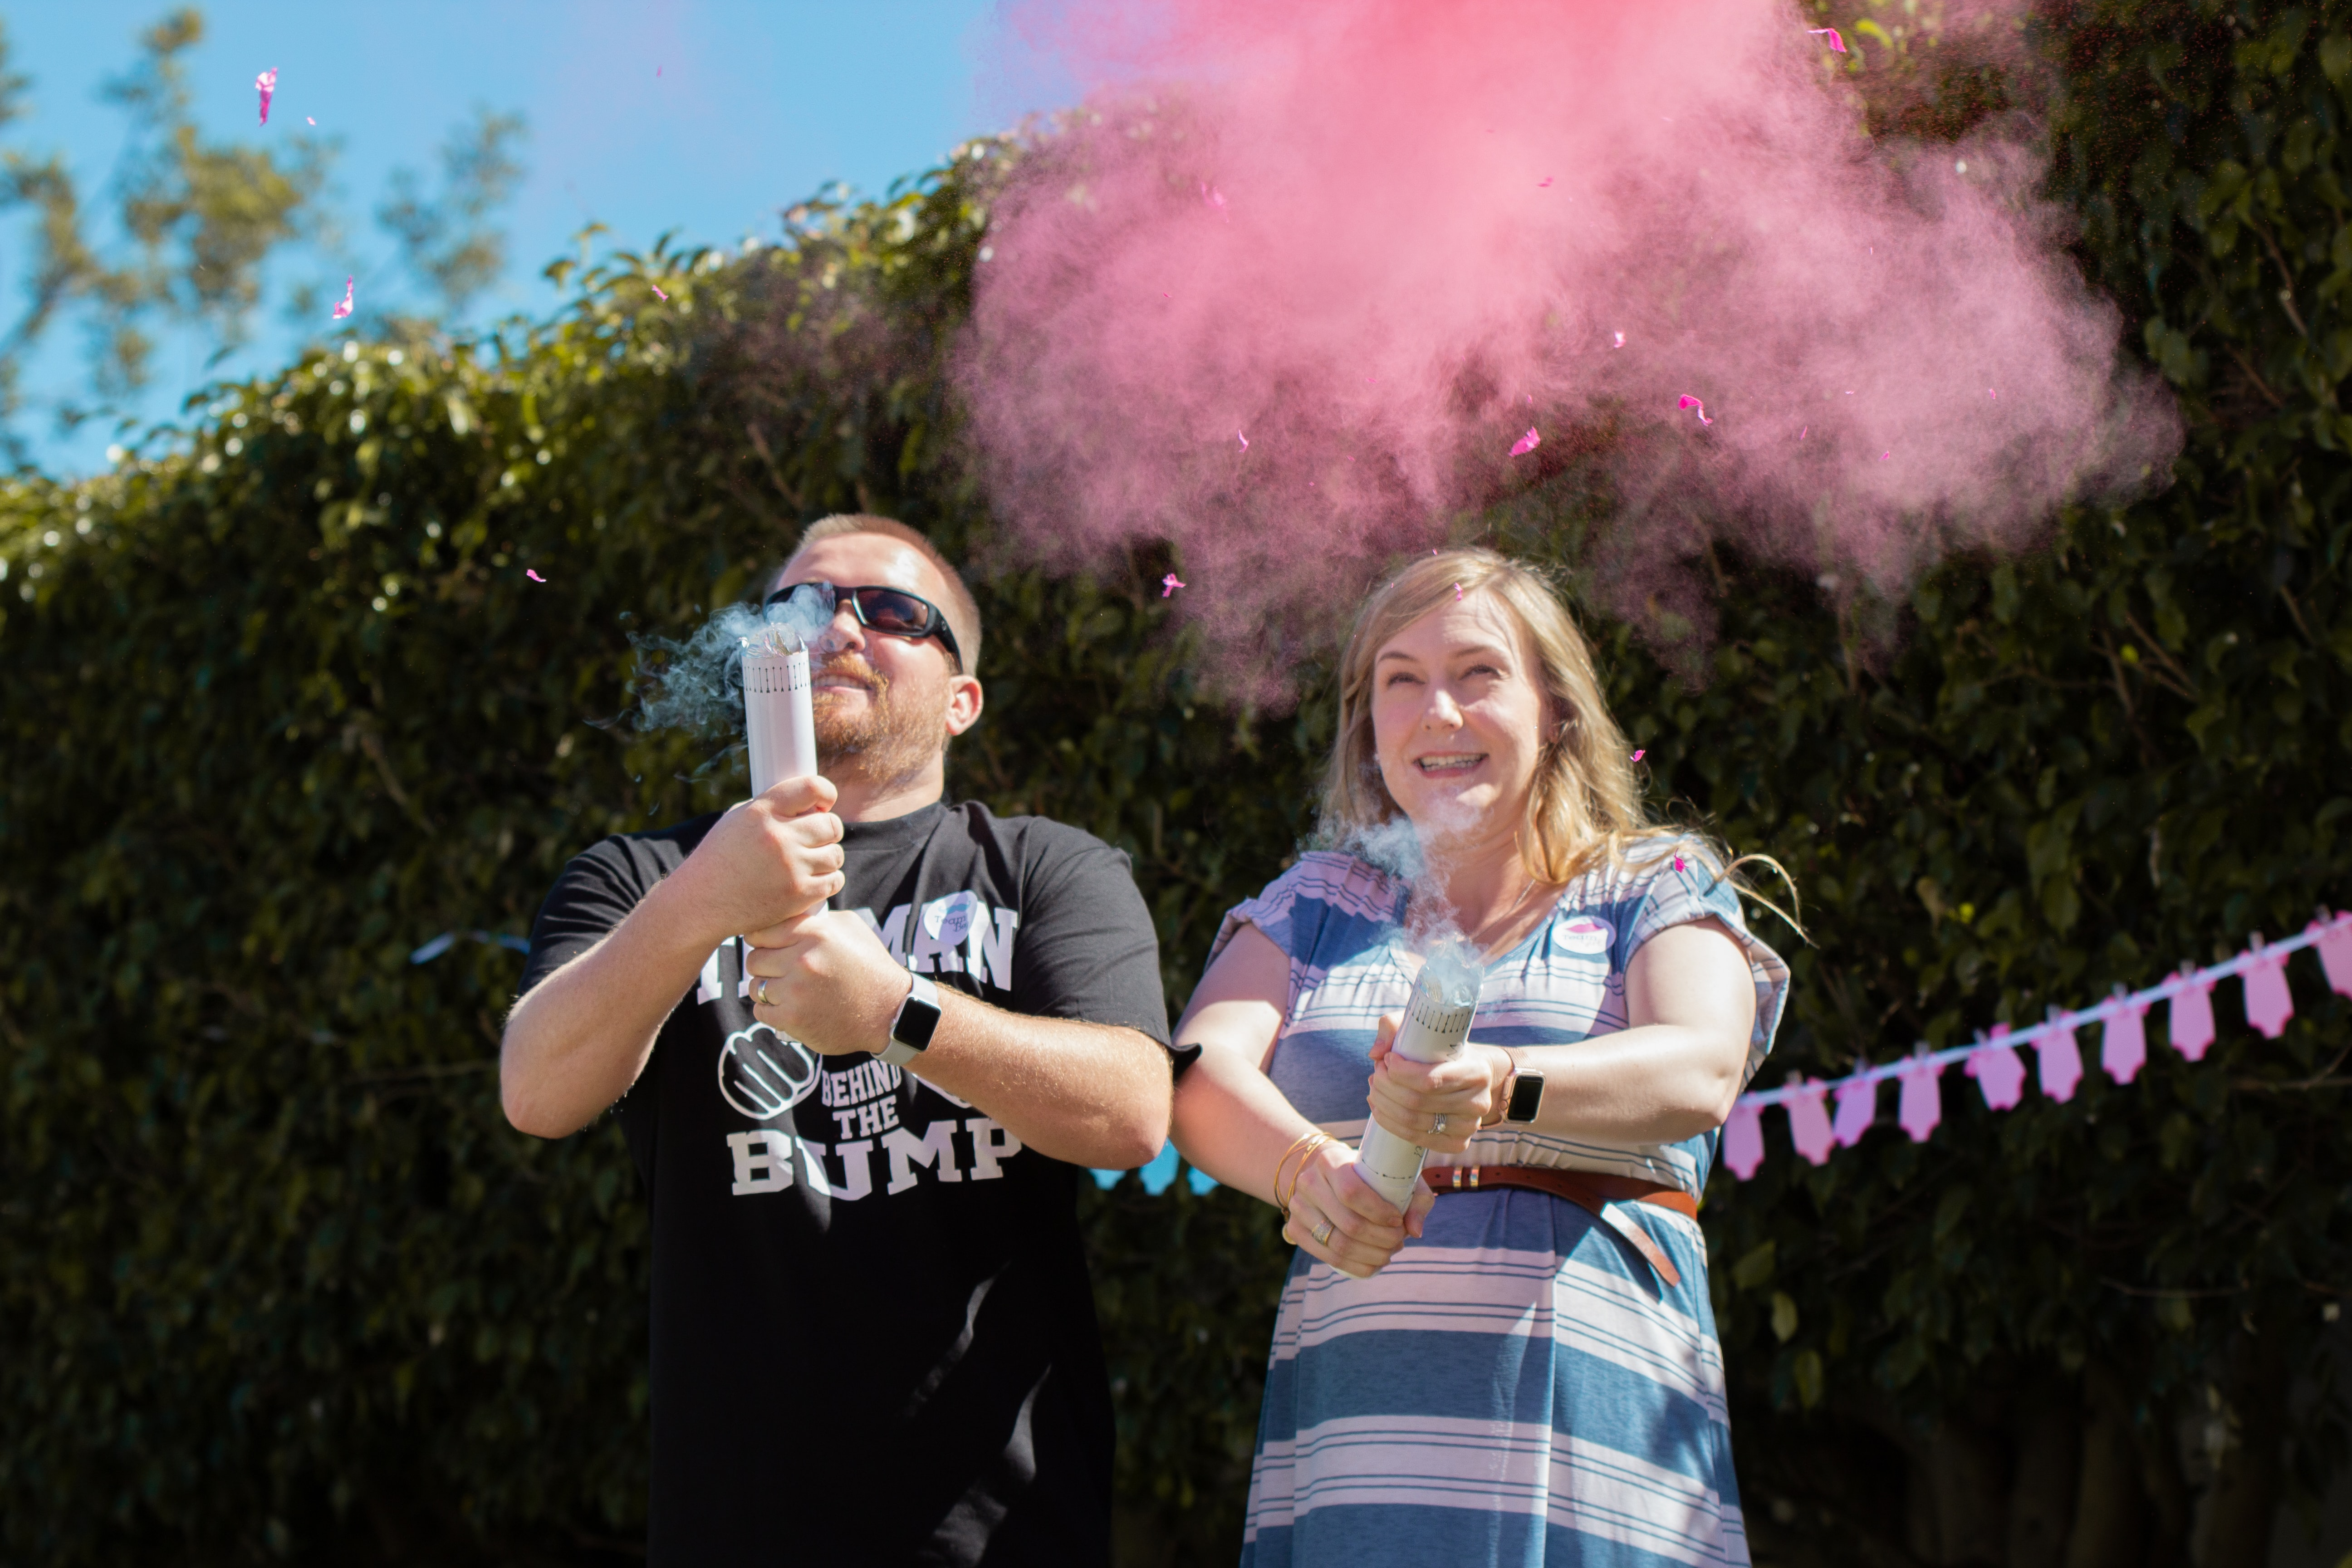 A gender reveal party: a white couple holds a device that releases blue or pink smoke.